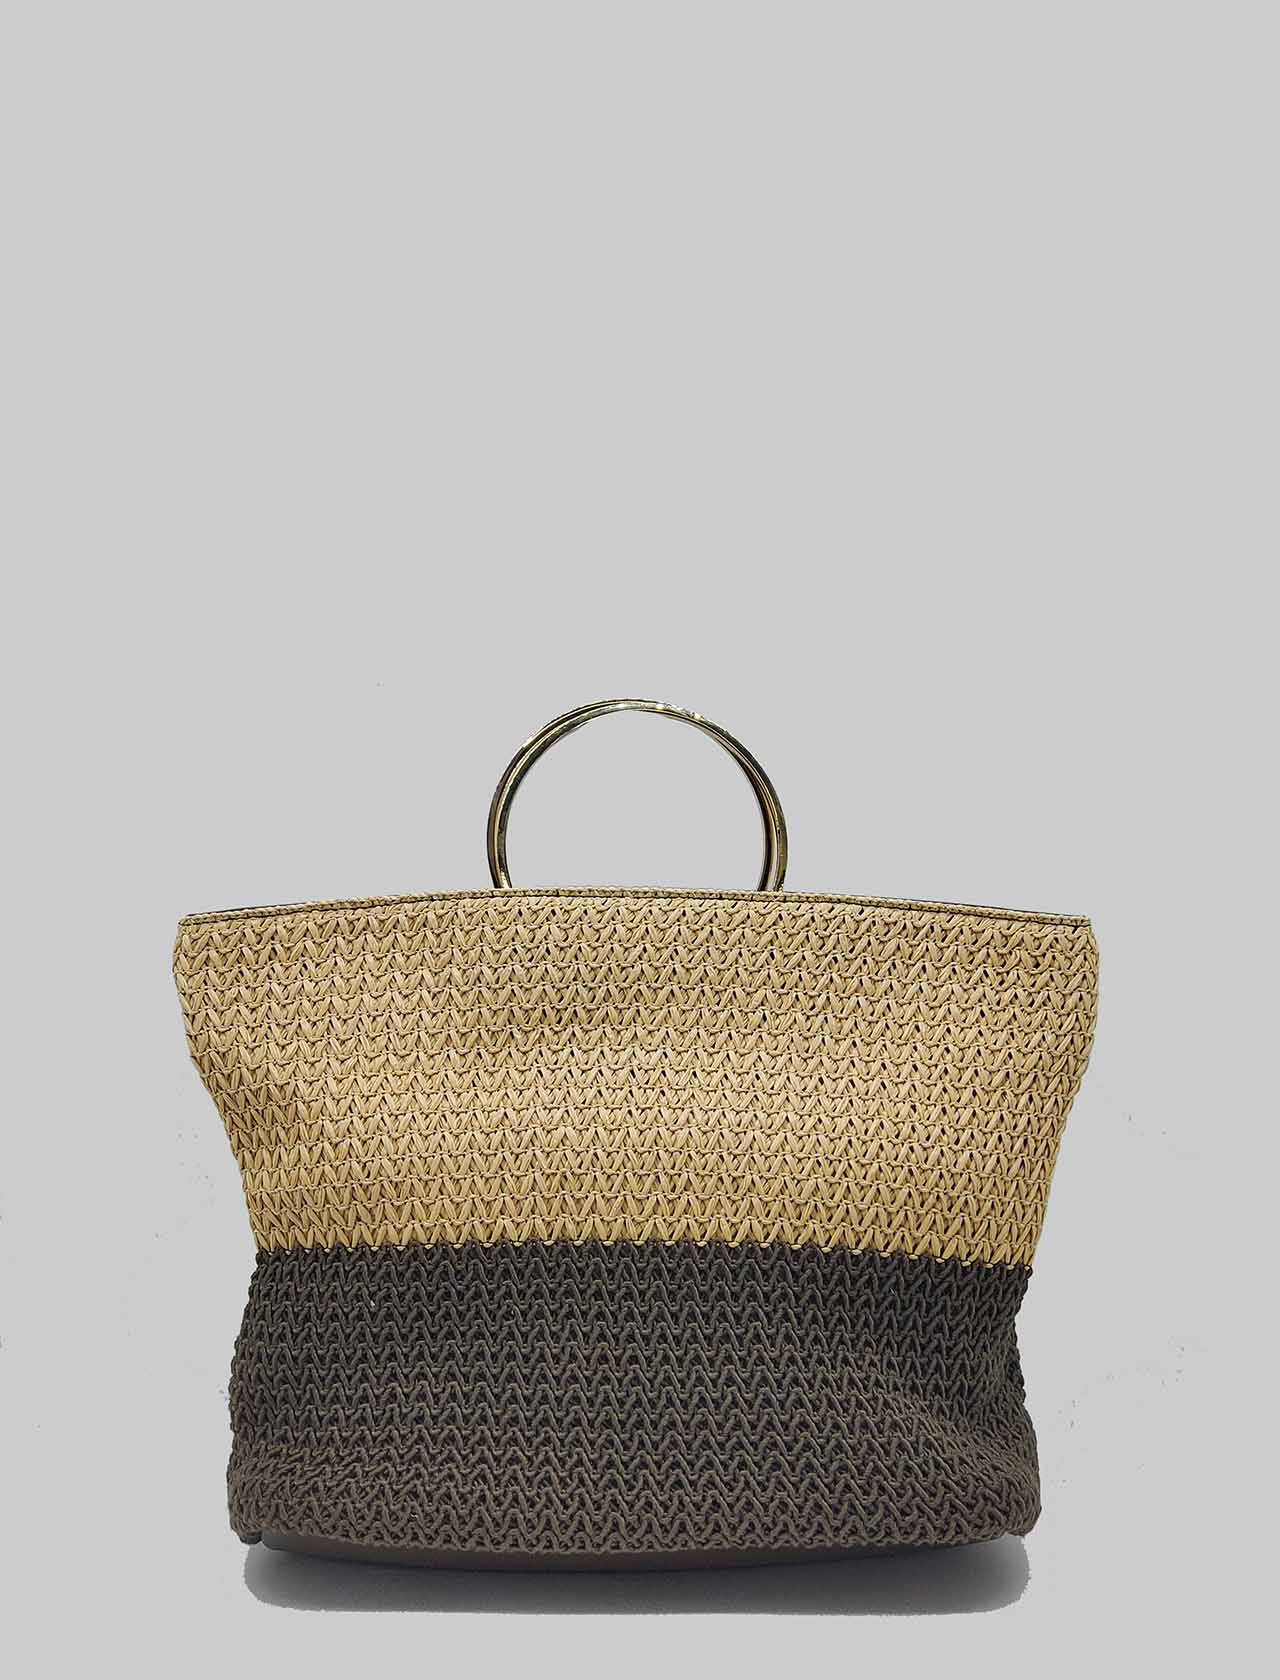 Woman Shoulder Bag in Taupe and Natural Bicolor Raffia with Gold Metal Handle and Shoulder Strap Unisa | Bags and backpacks | ZJENUS901